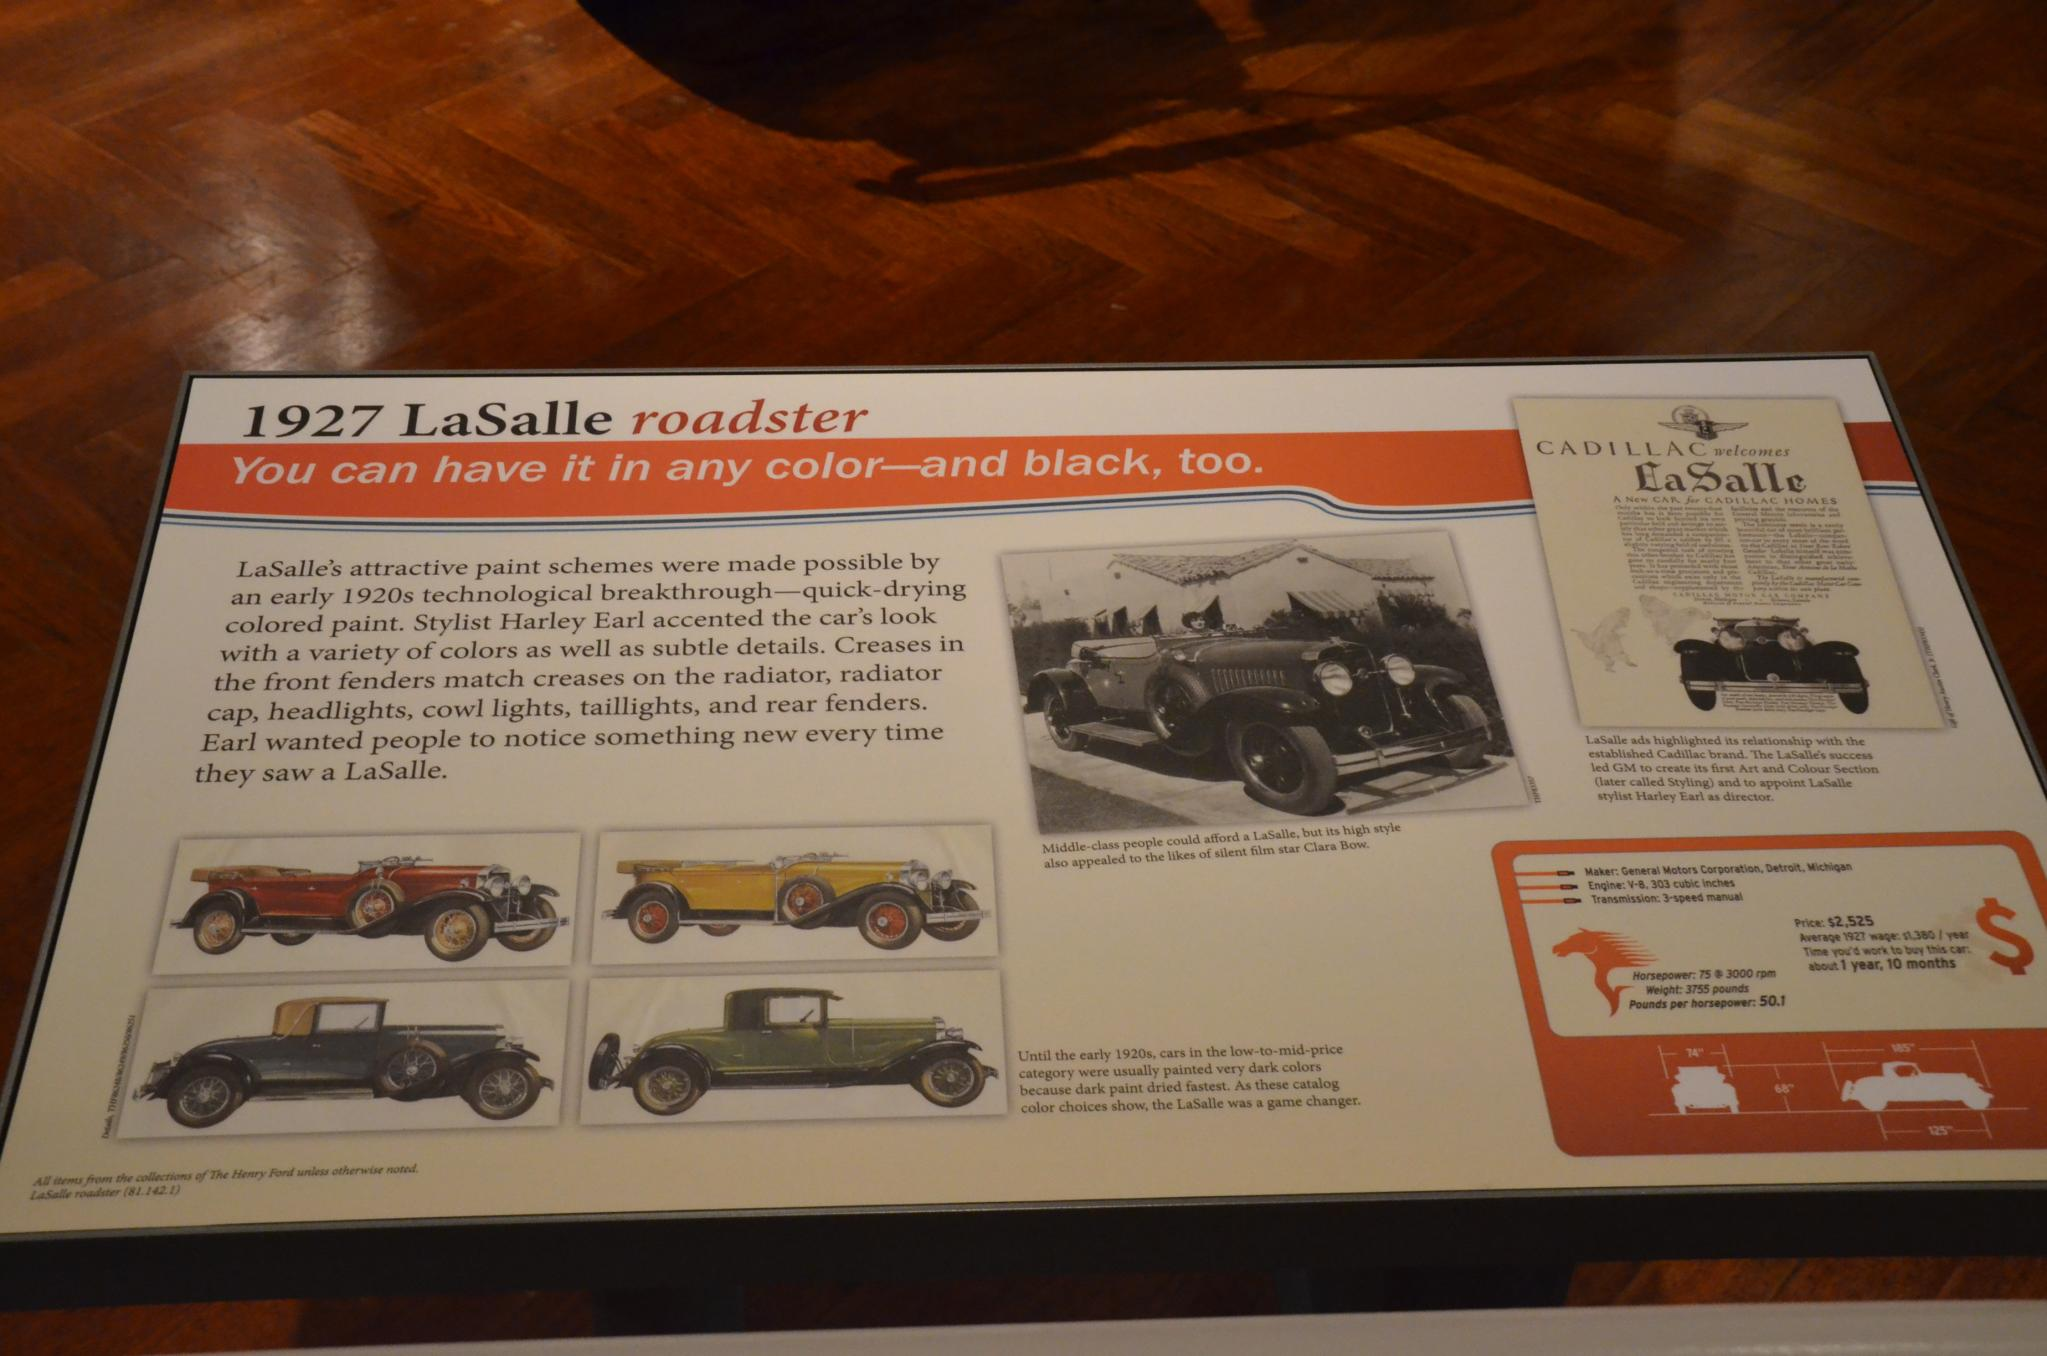 File:1927 LaSalle roadster - The Henry Ford - Engines